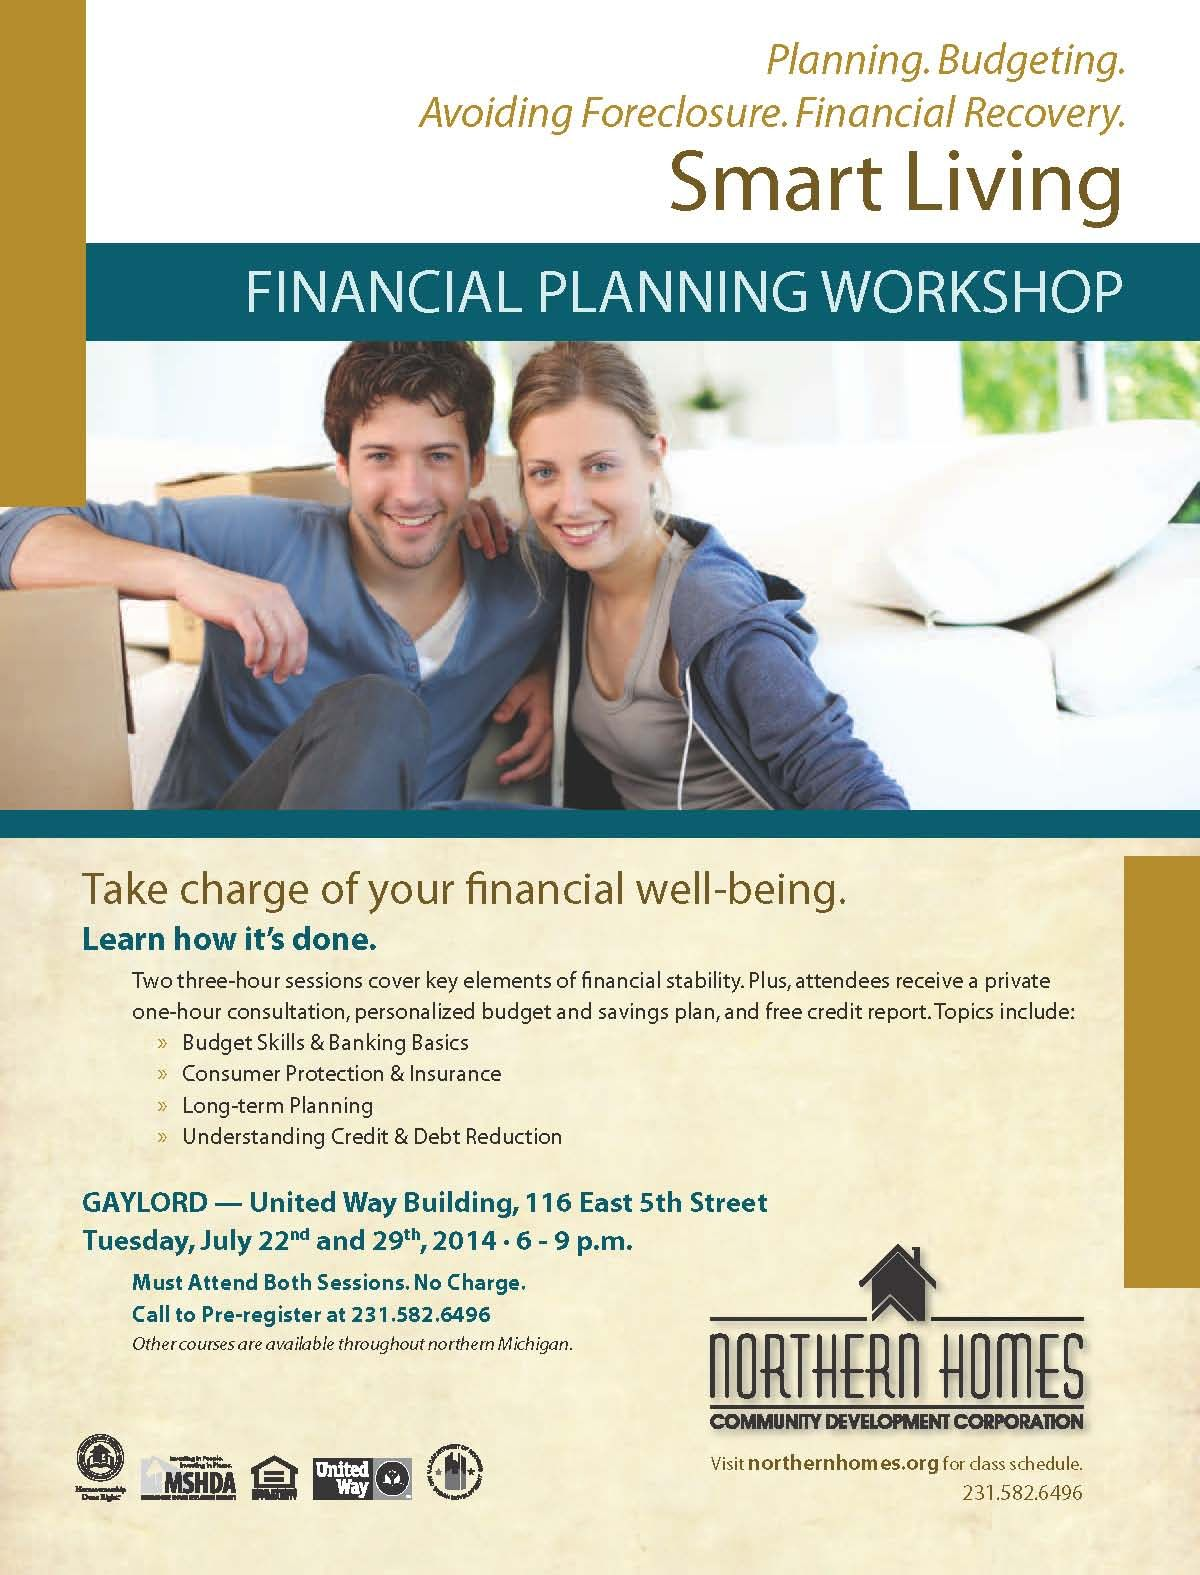 Pin On Smart Living Financial Planning Workshops